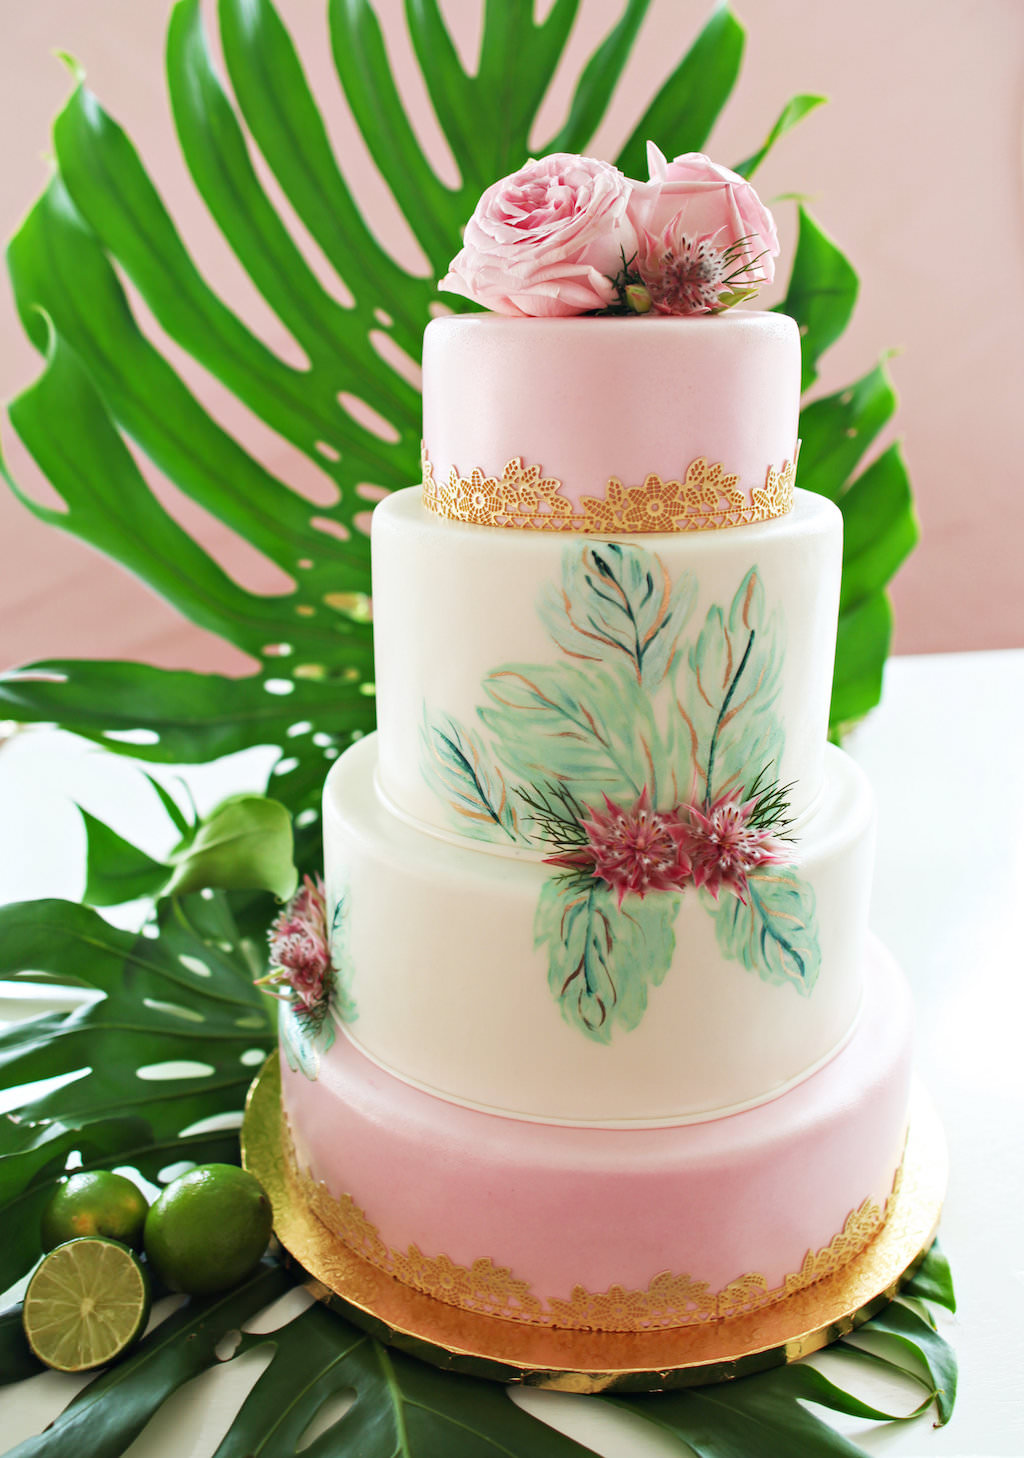 Four Tiered Tropical Havana Inspired Wedding Cake with PInk Icing, Painted Leaf Details and Pink Roses and Gold Floral Details, on Gold Cakestand with Monsterra Palm Frond and Limes